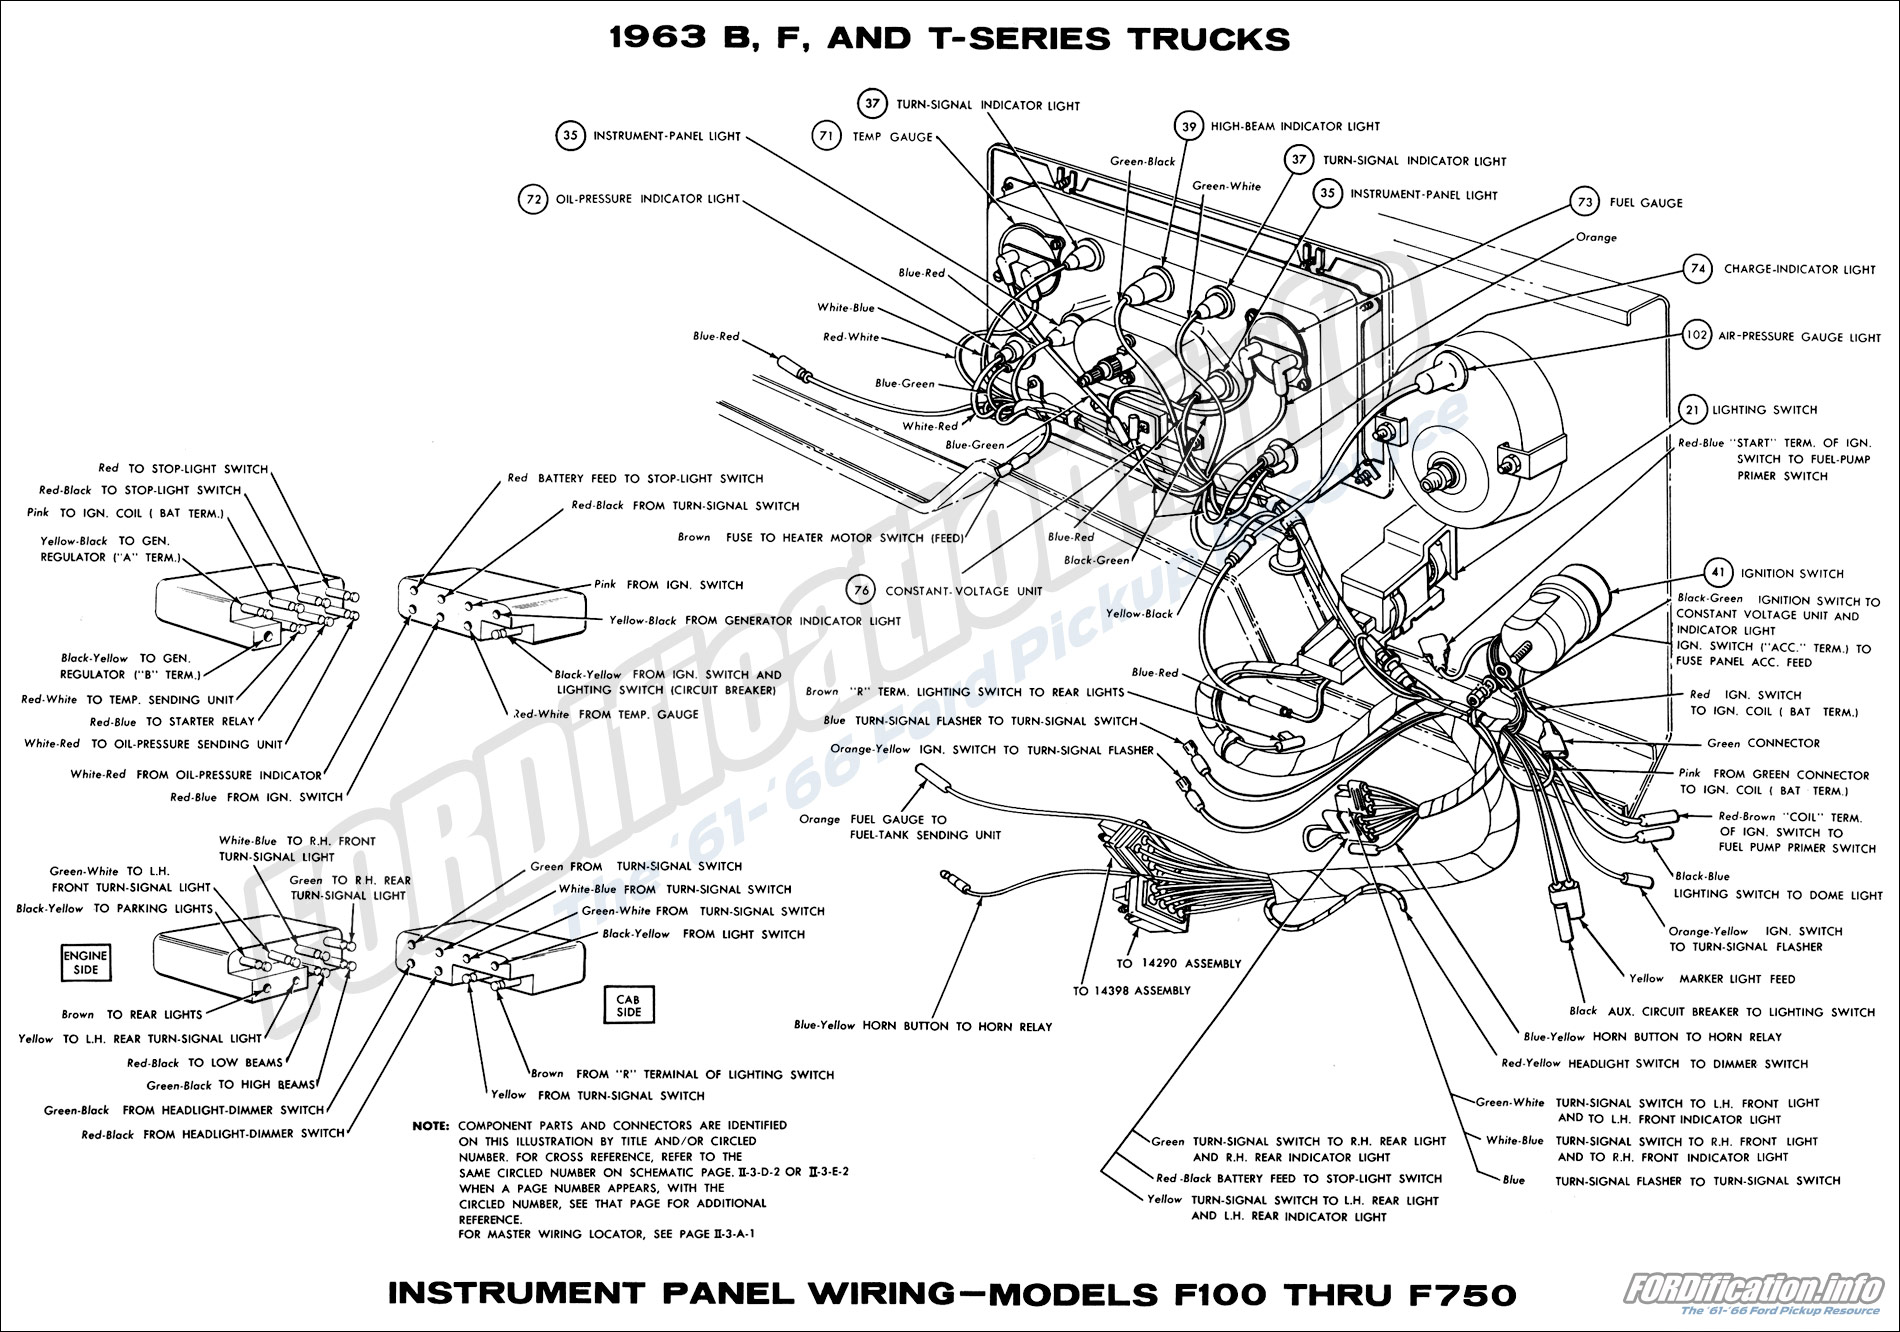 63instrumentpanel 1963 ford truck wiring diagrams fordification info the '61 '66 Ford Truck Wiring Diagrams at crackthecode.co